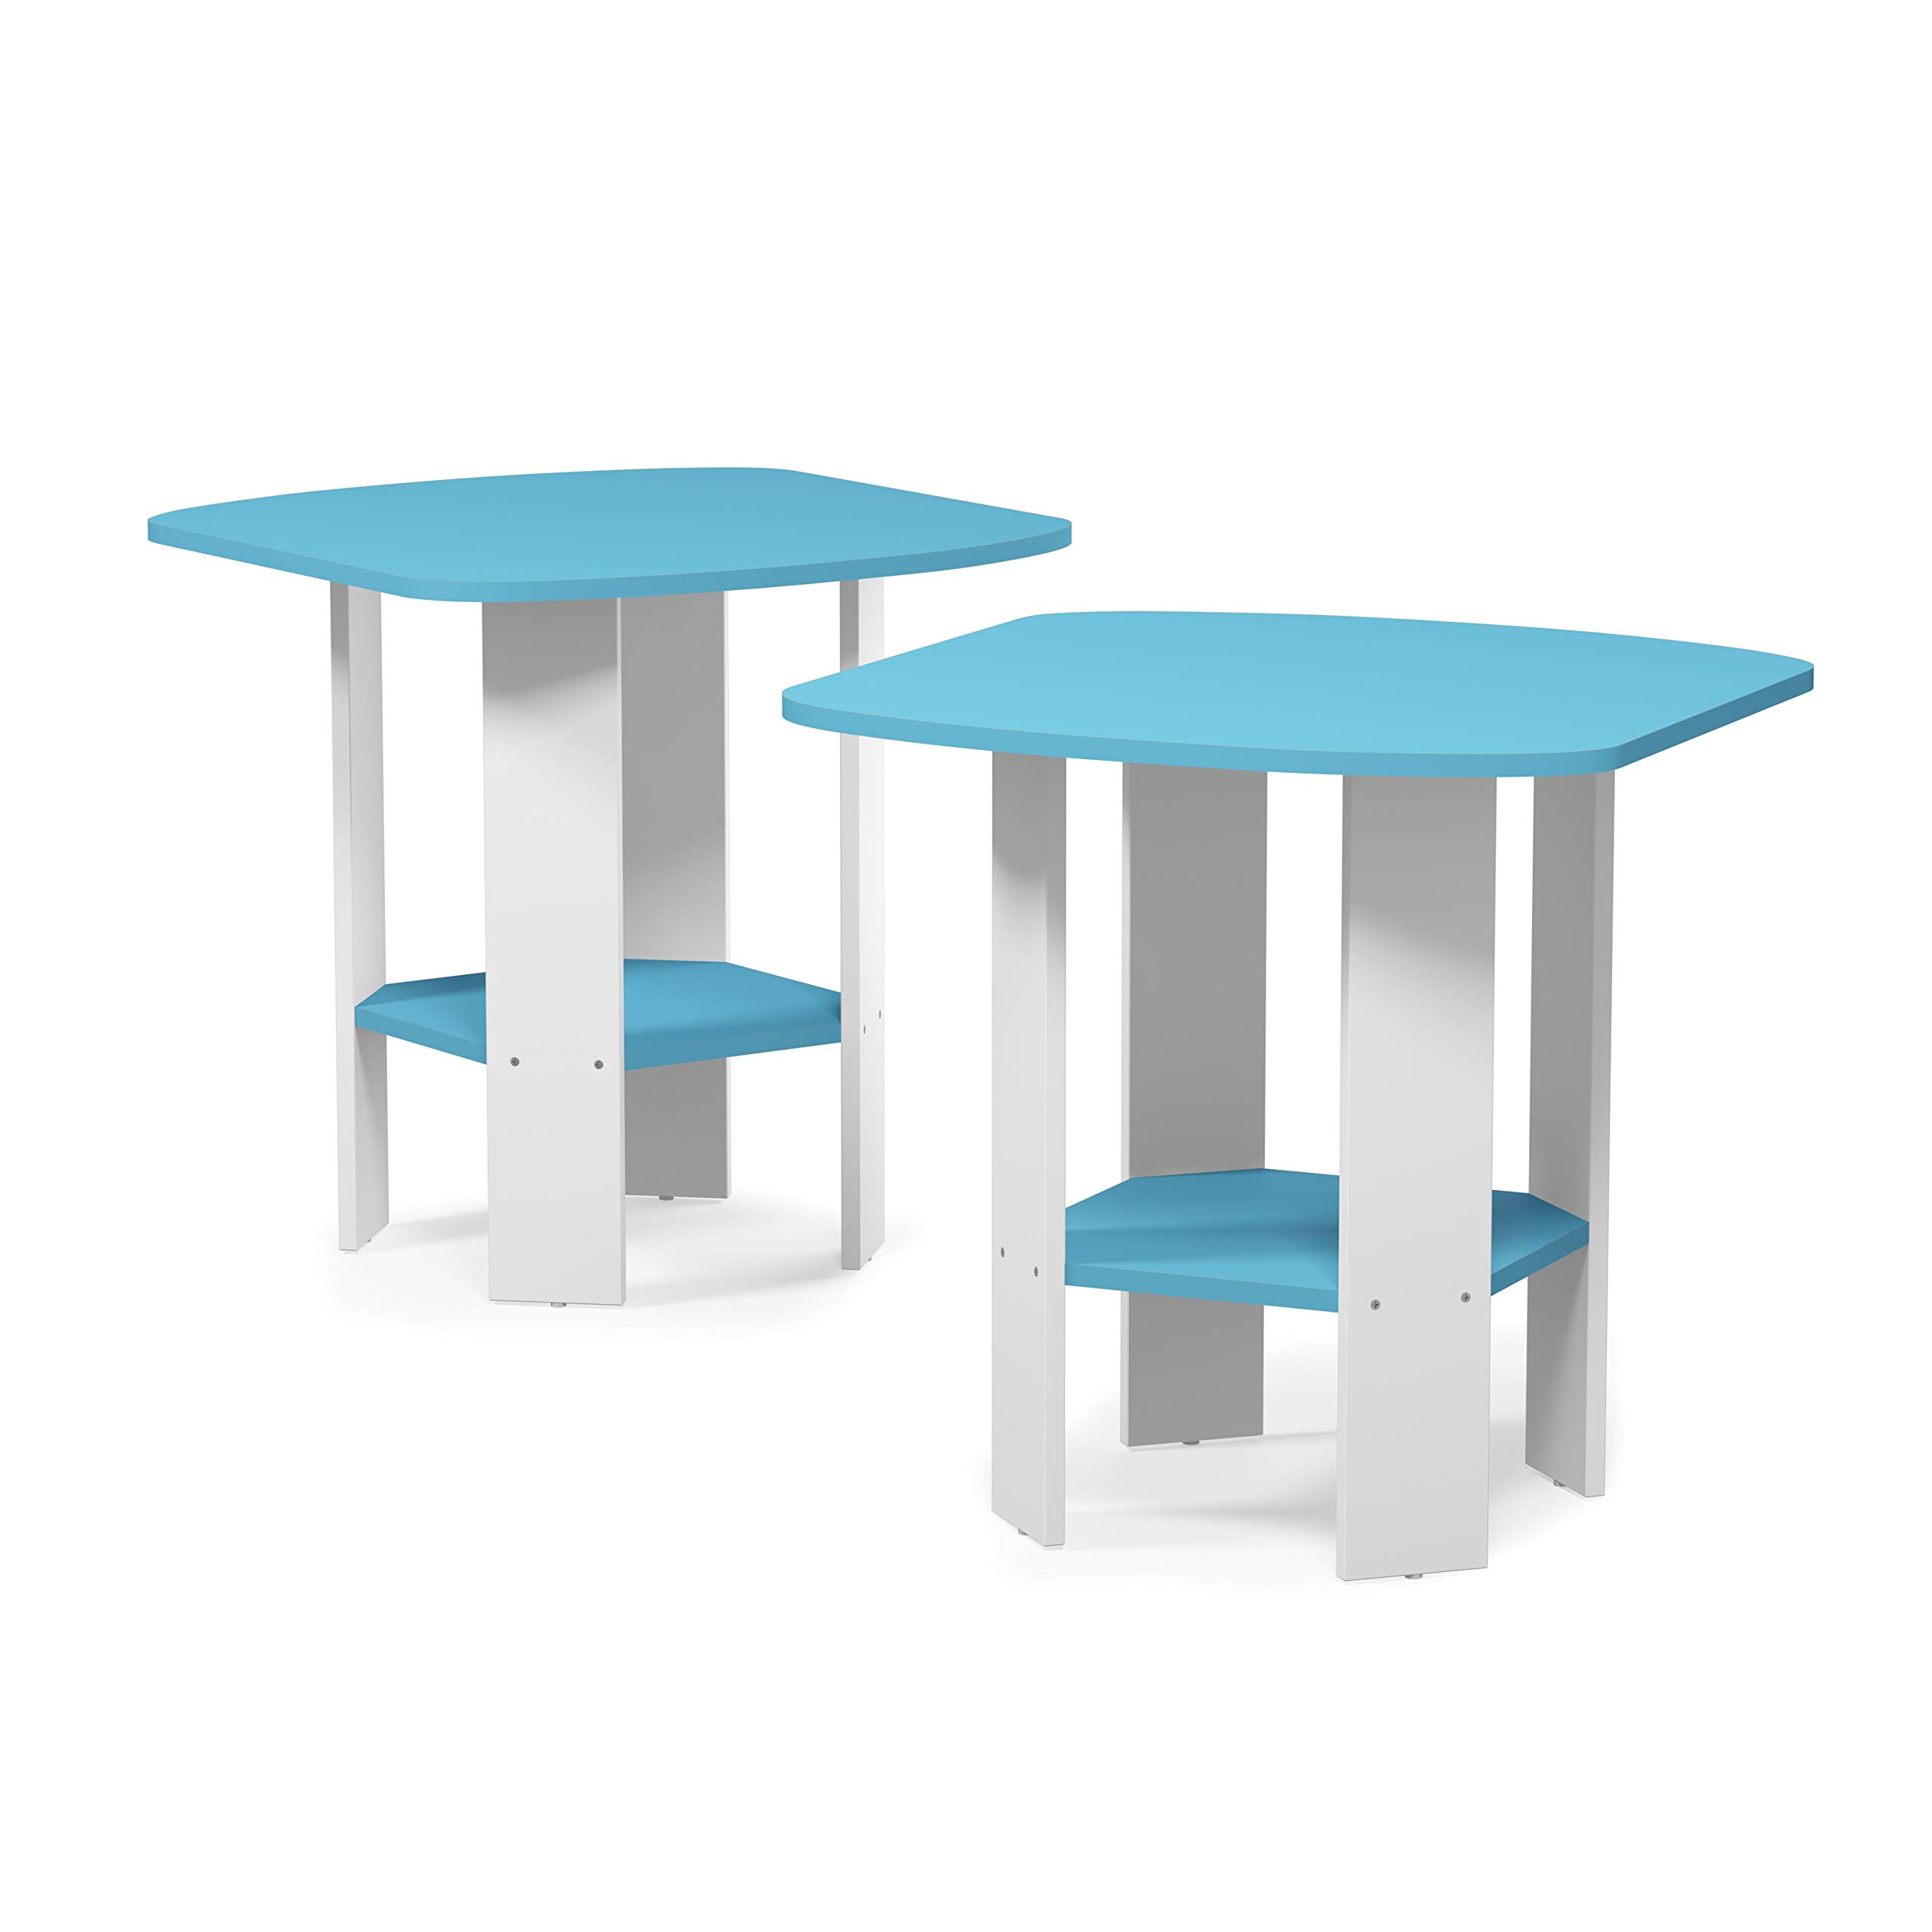 FURINNO Simple Design 2-Pack End Side Table, Light Blue/White by Furinno